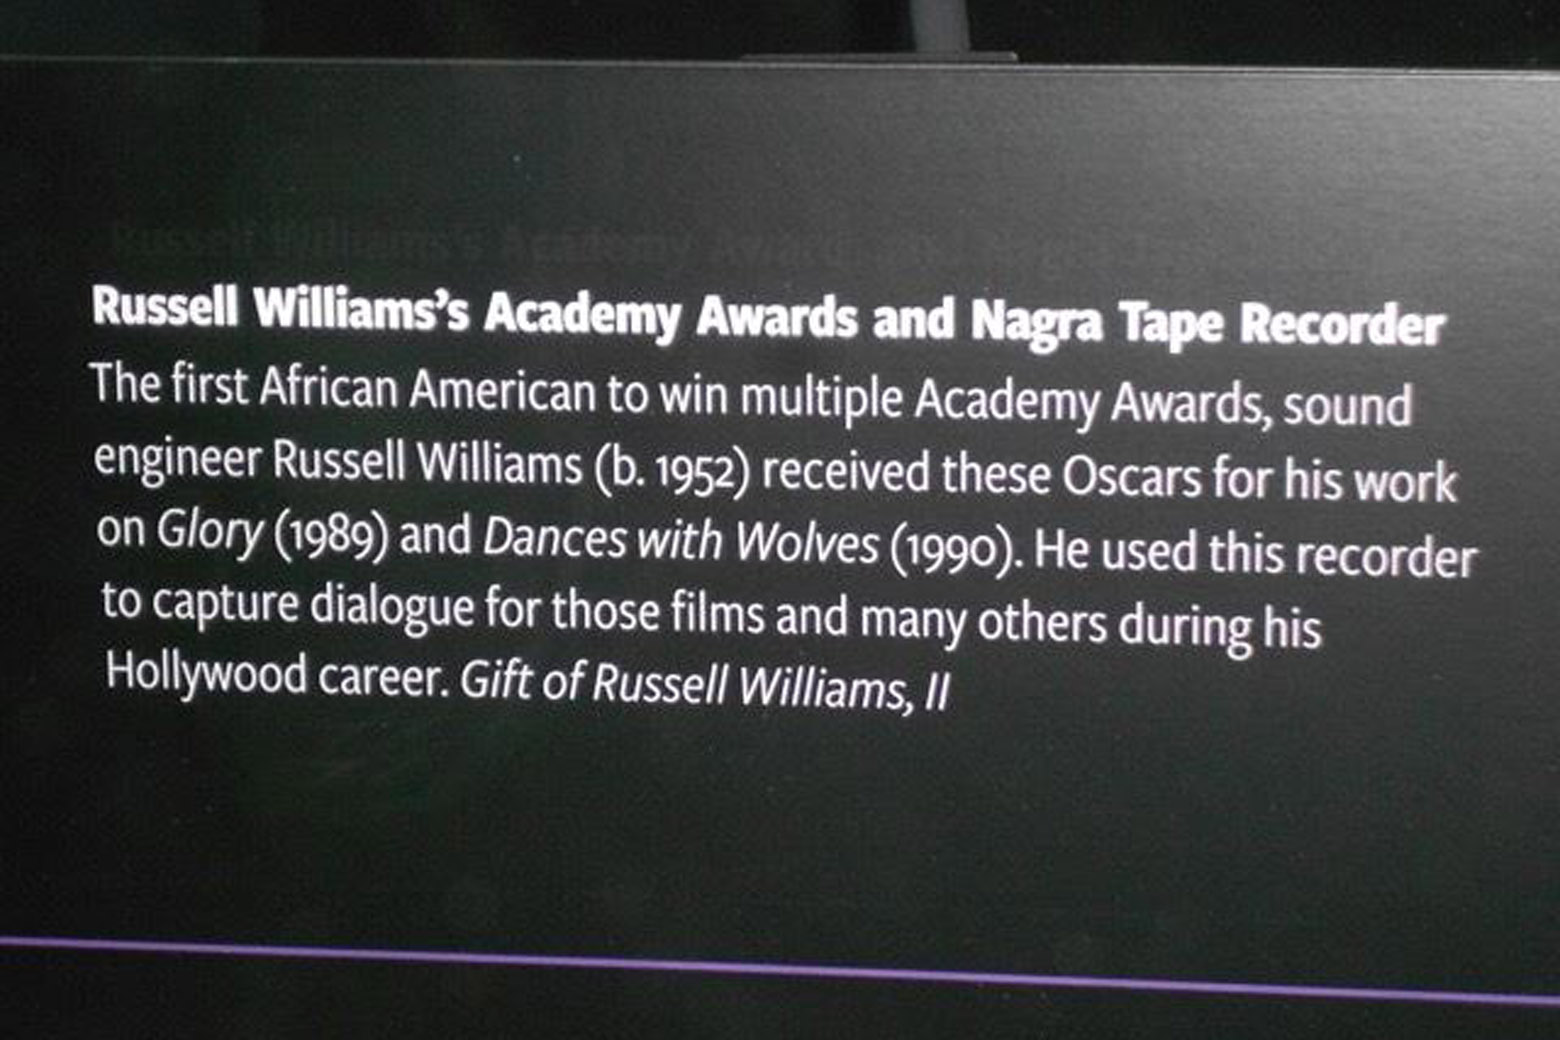 The plaque from the Smithsonian National Museum of African American History and Culture. (Courtesy Russell Williams via Mark M Harris)